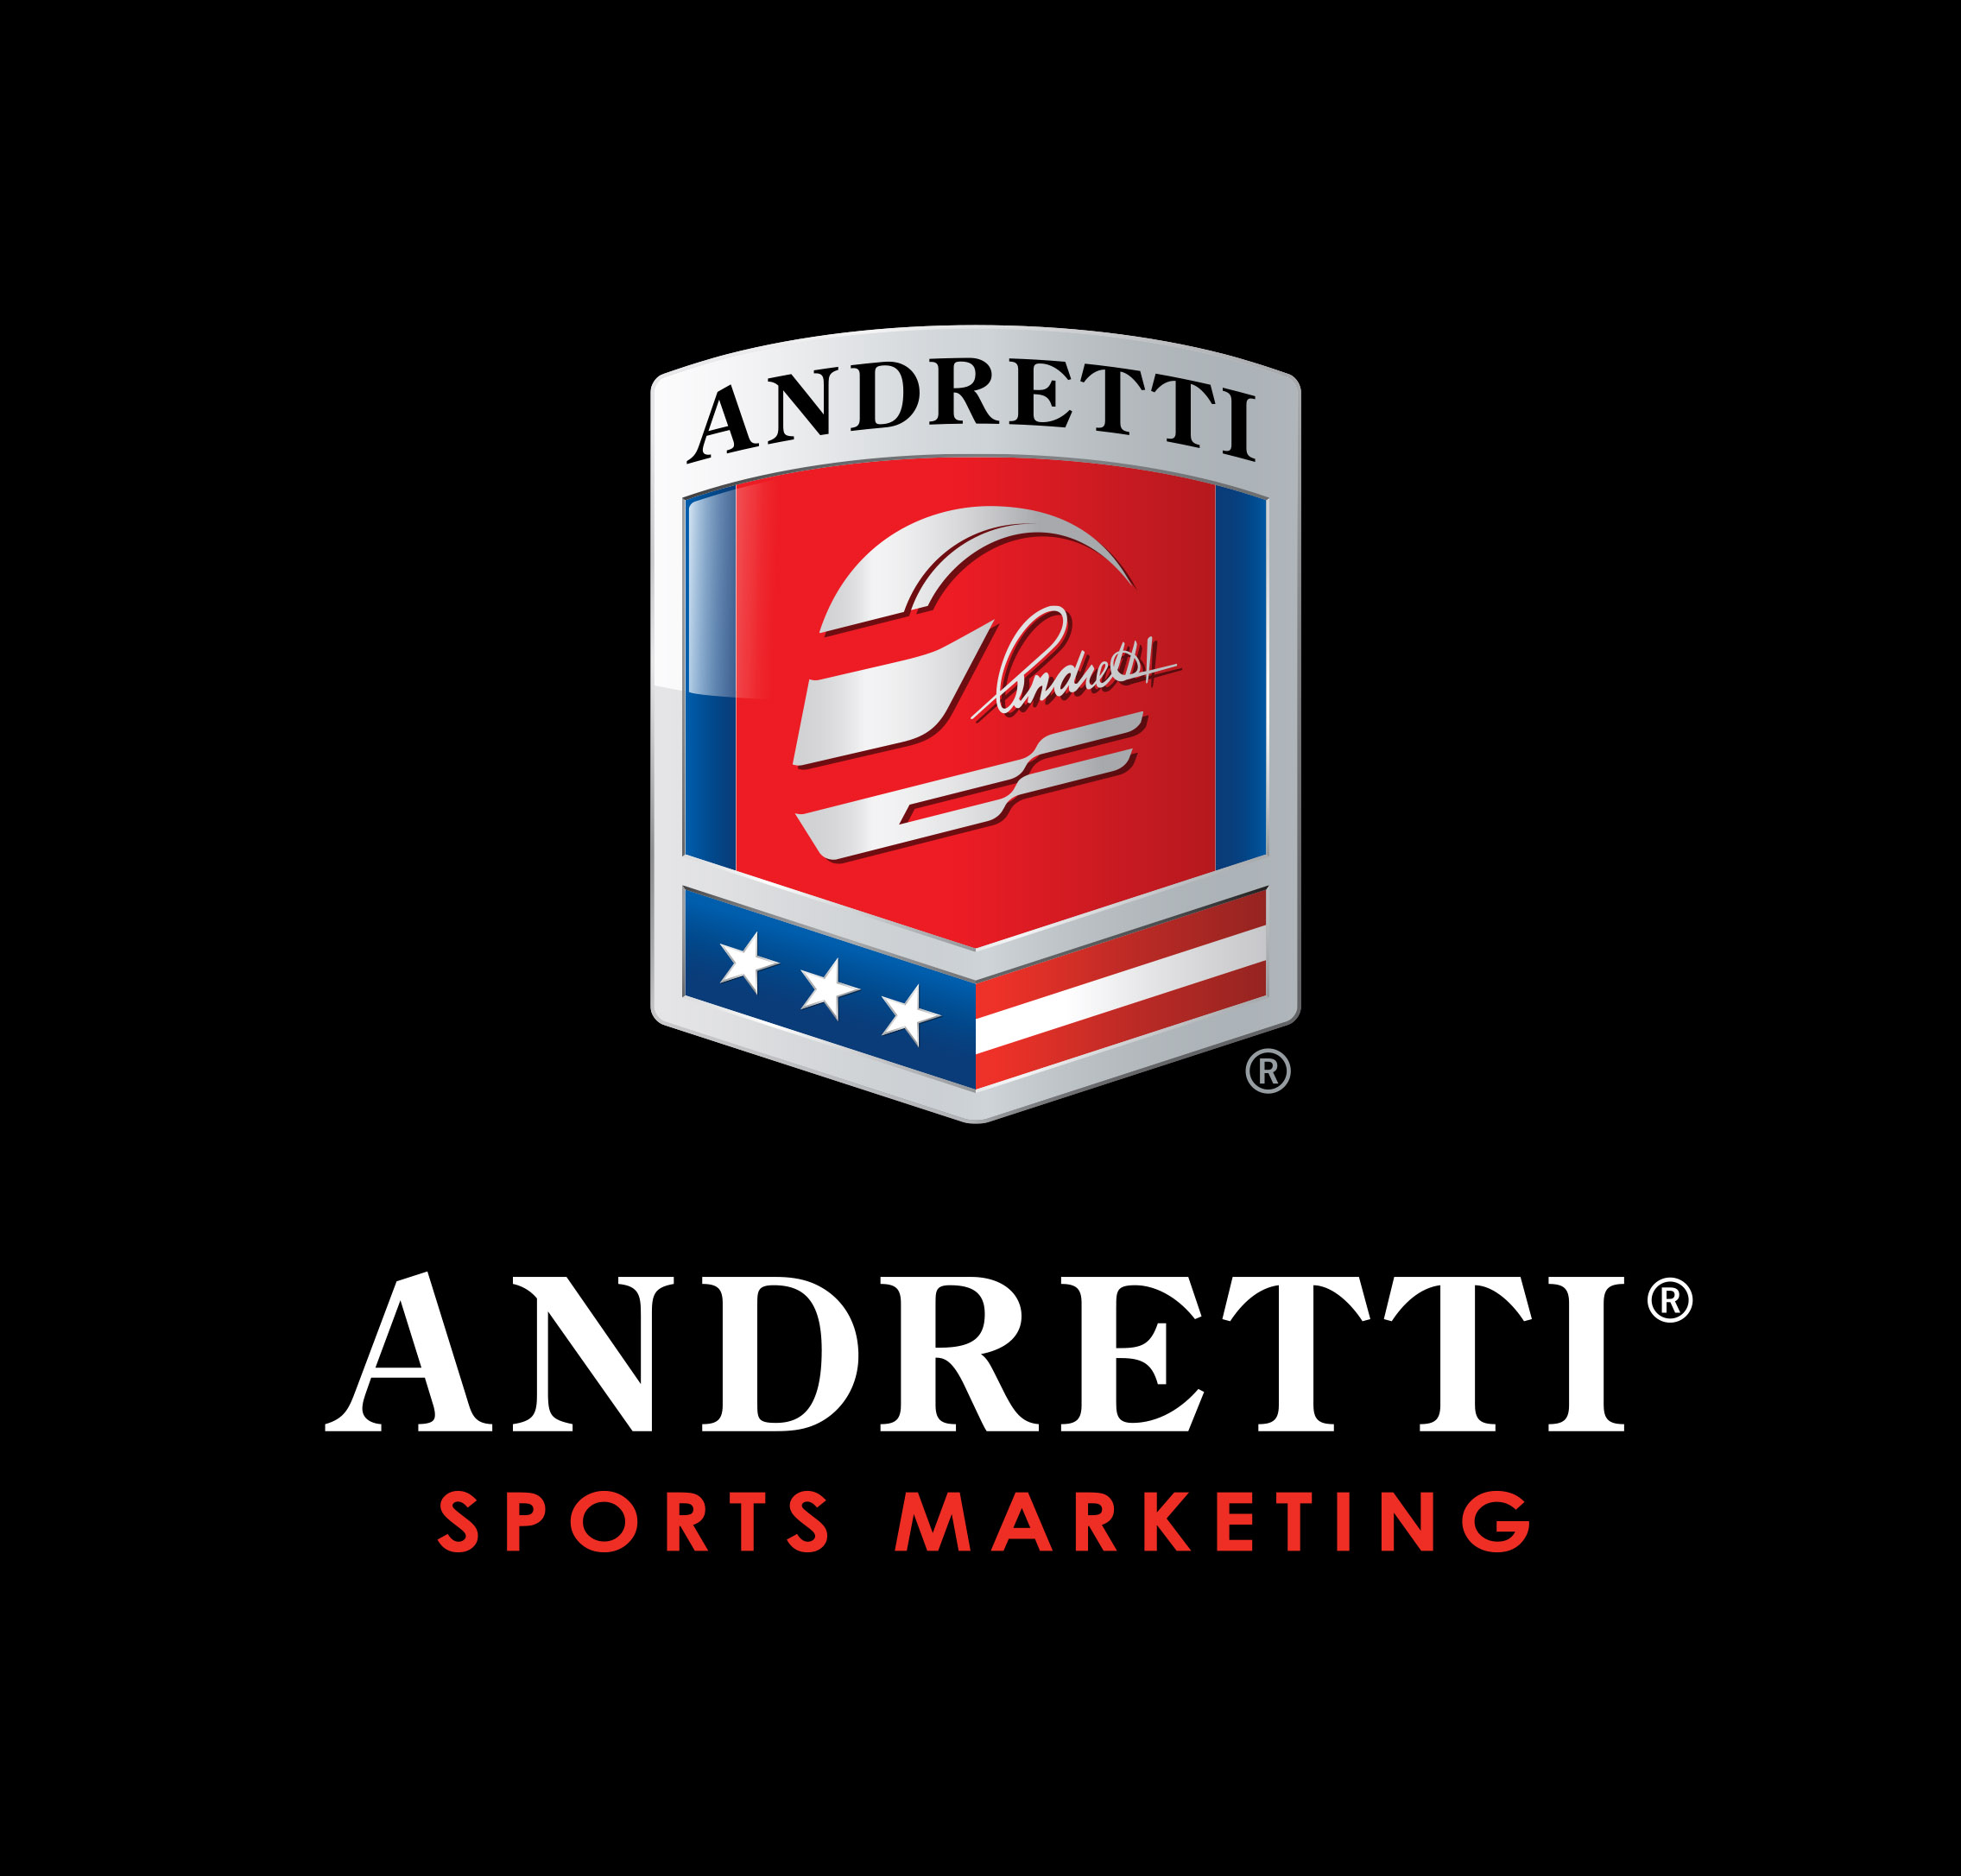 Andretti Sports Marketing